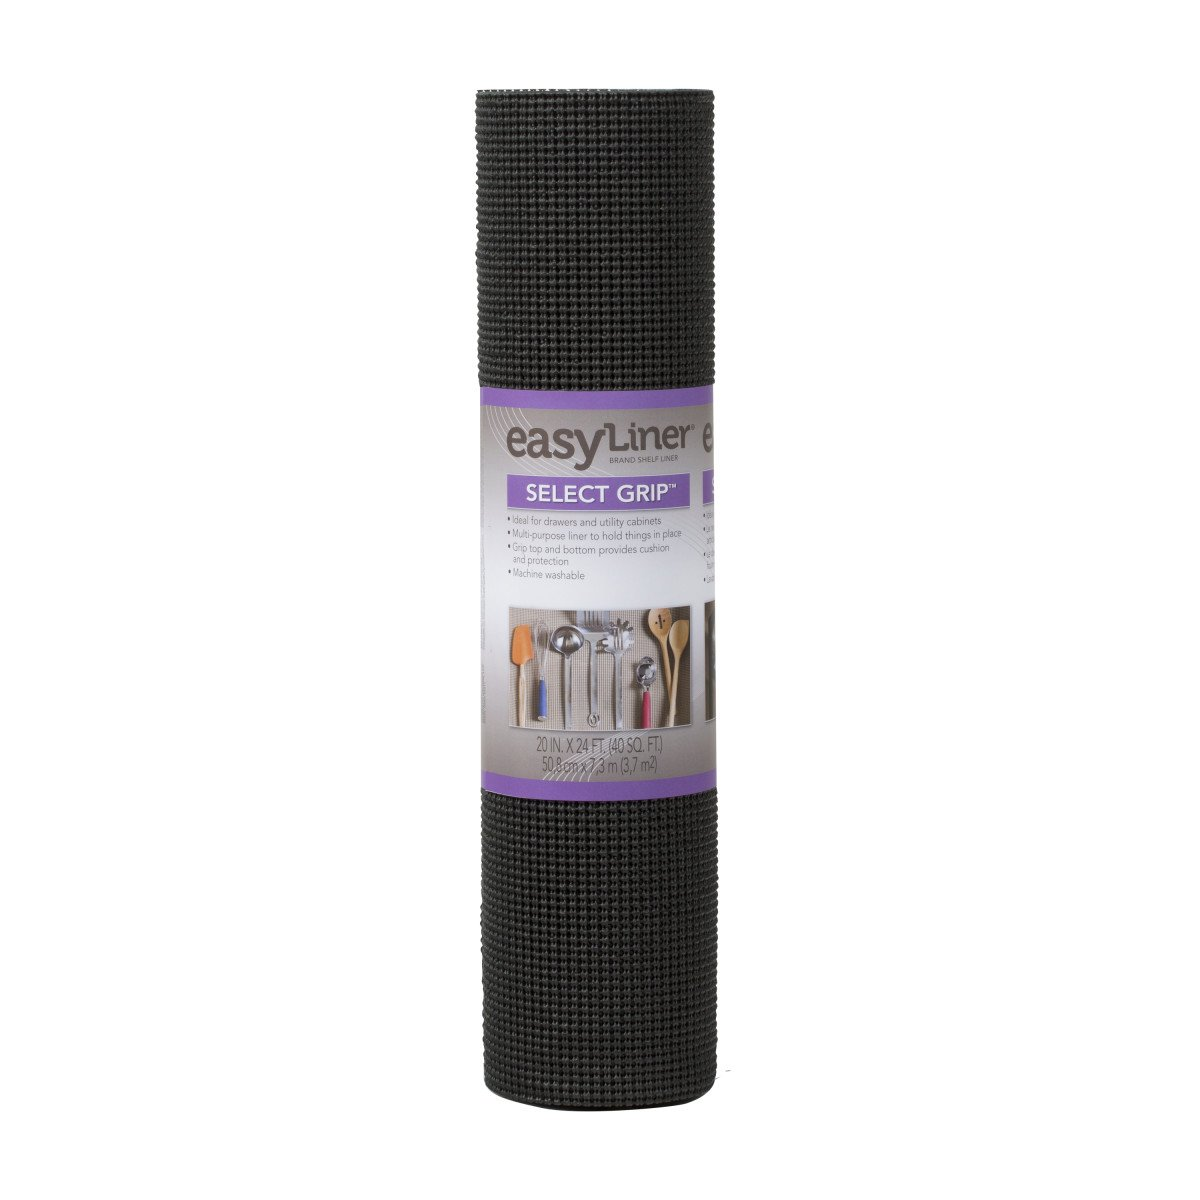 Duck Brand Select Grip Easy Liner Non-Adhesive Shelf Liner, 20 in. x 24 ft, Black (281876)